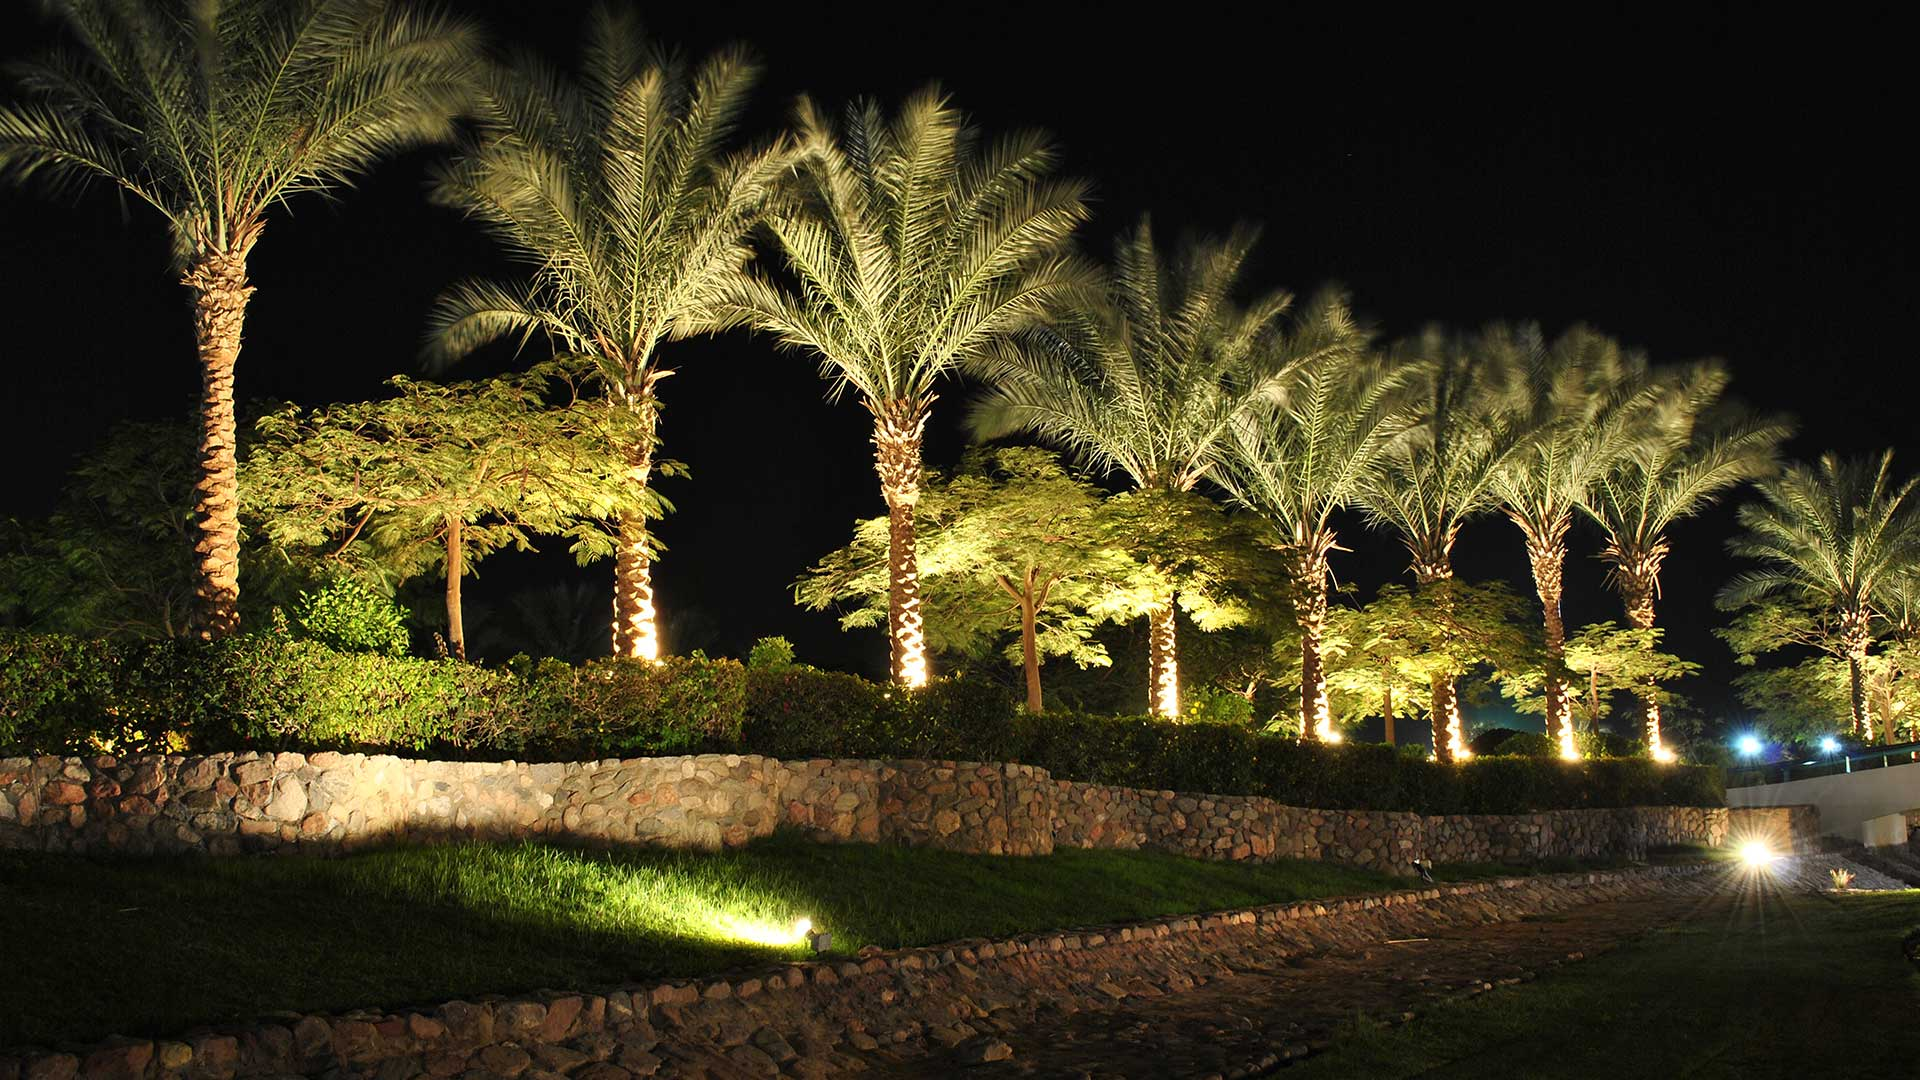 Palm trees spotlighted by LED outdoor lighting in Rancho Santa Fe, CA.